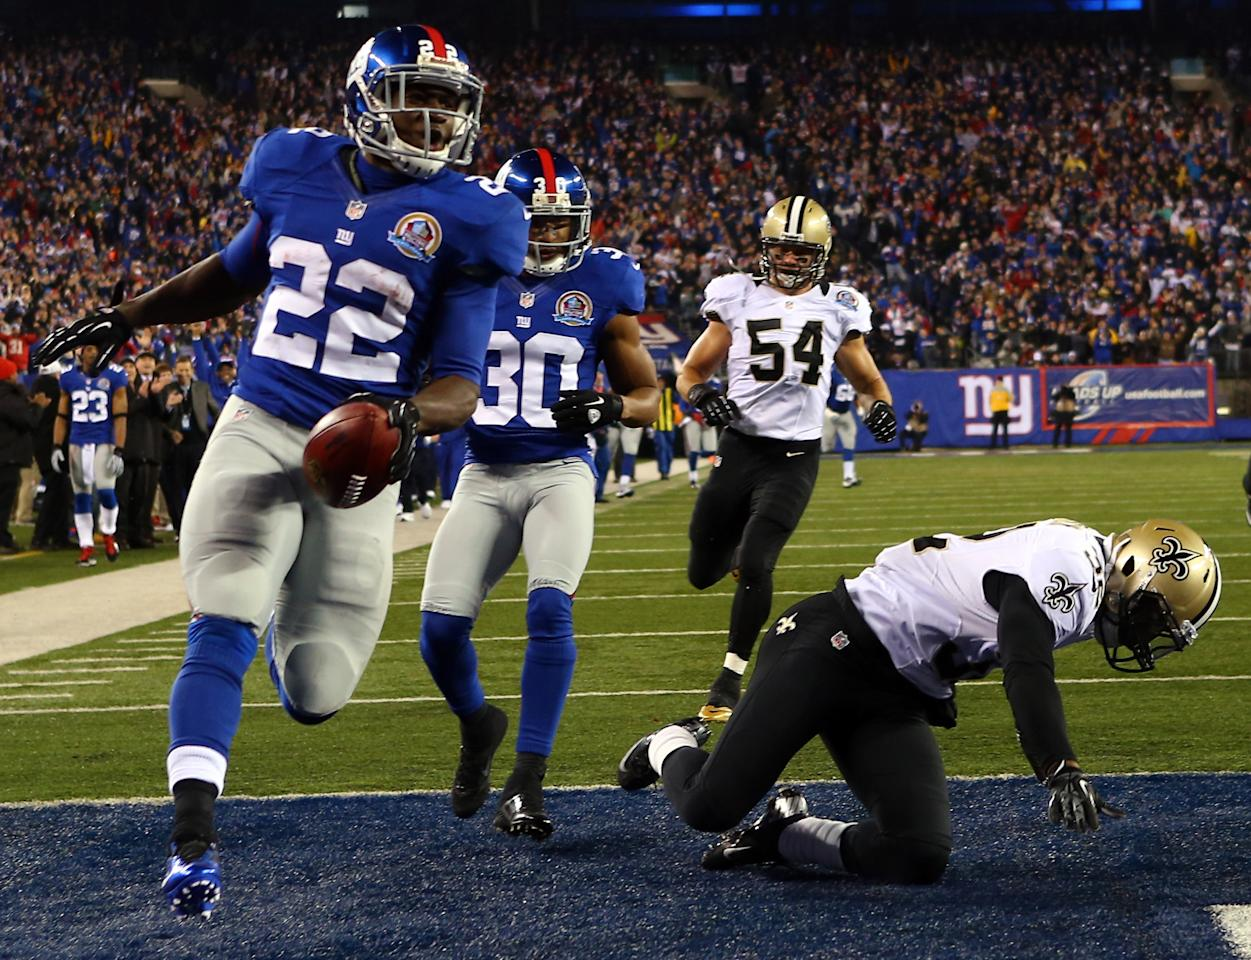 EAST RUTHERFORD, NJ - DECEMBER 09:   David Wilson #22 of the New York Giants celebrates his touchdown while Johnny Patrick #32 of the New Orleans Saints falls on December 9, 2012 at MetLife Stadium in East Rutherford, New Jersey.  (Photo by Elsa/Getty Images)